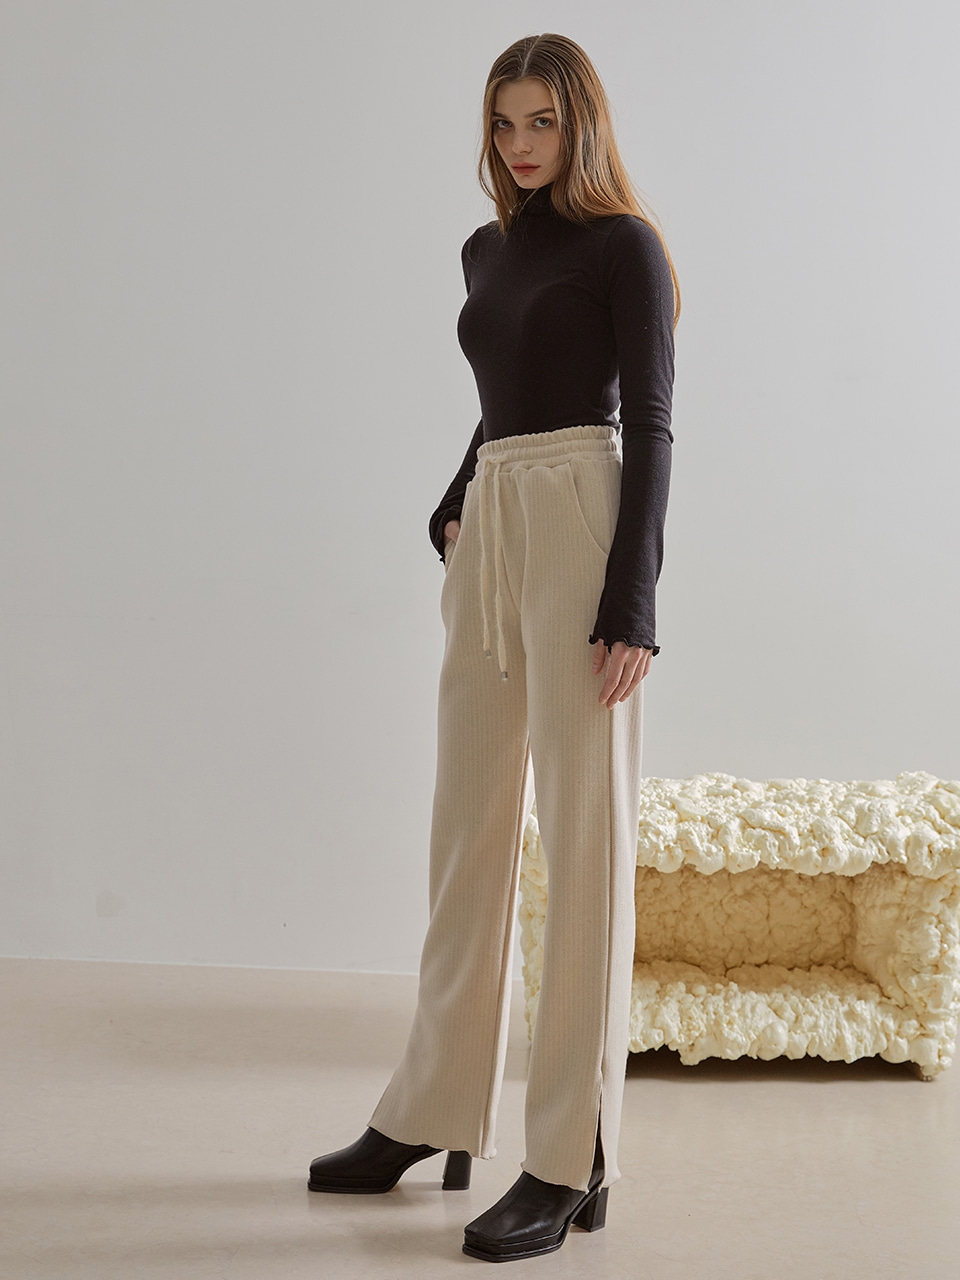 Wool Banding Slit Pants, Cream